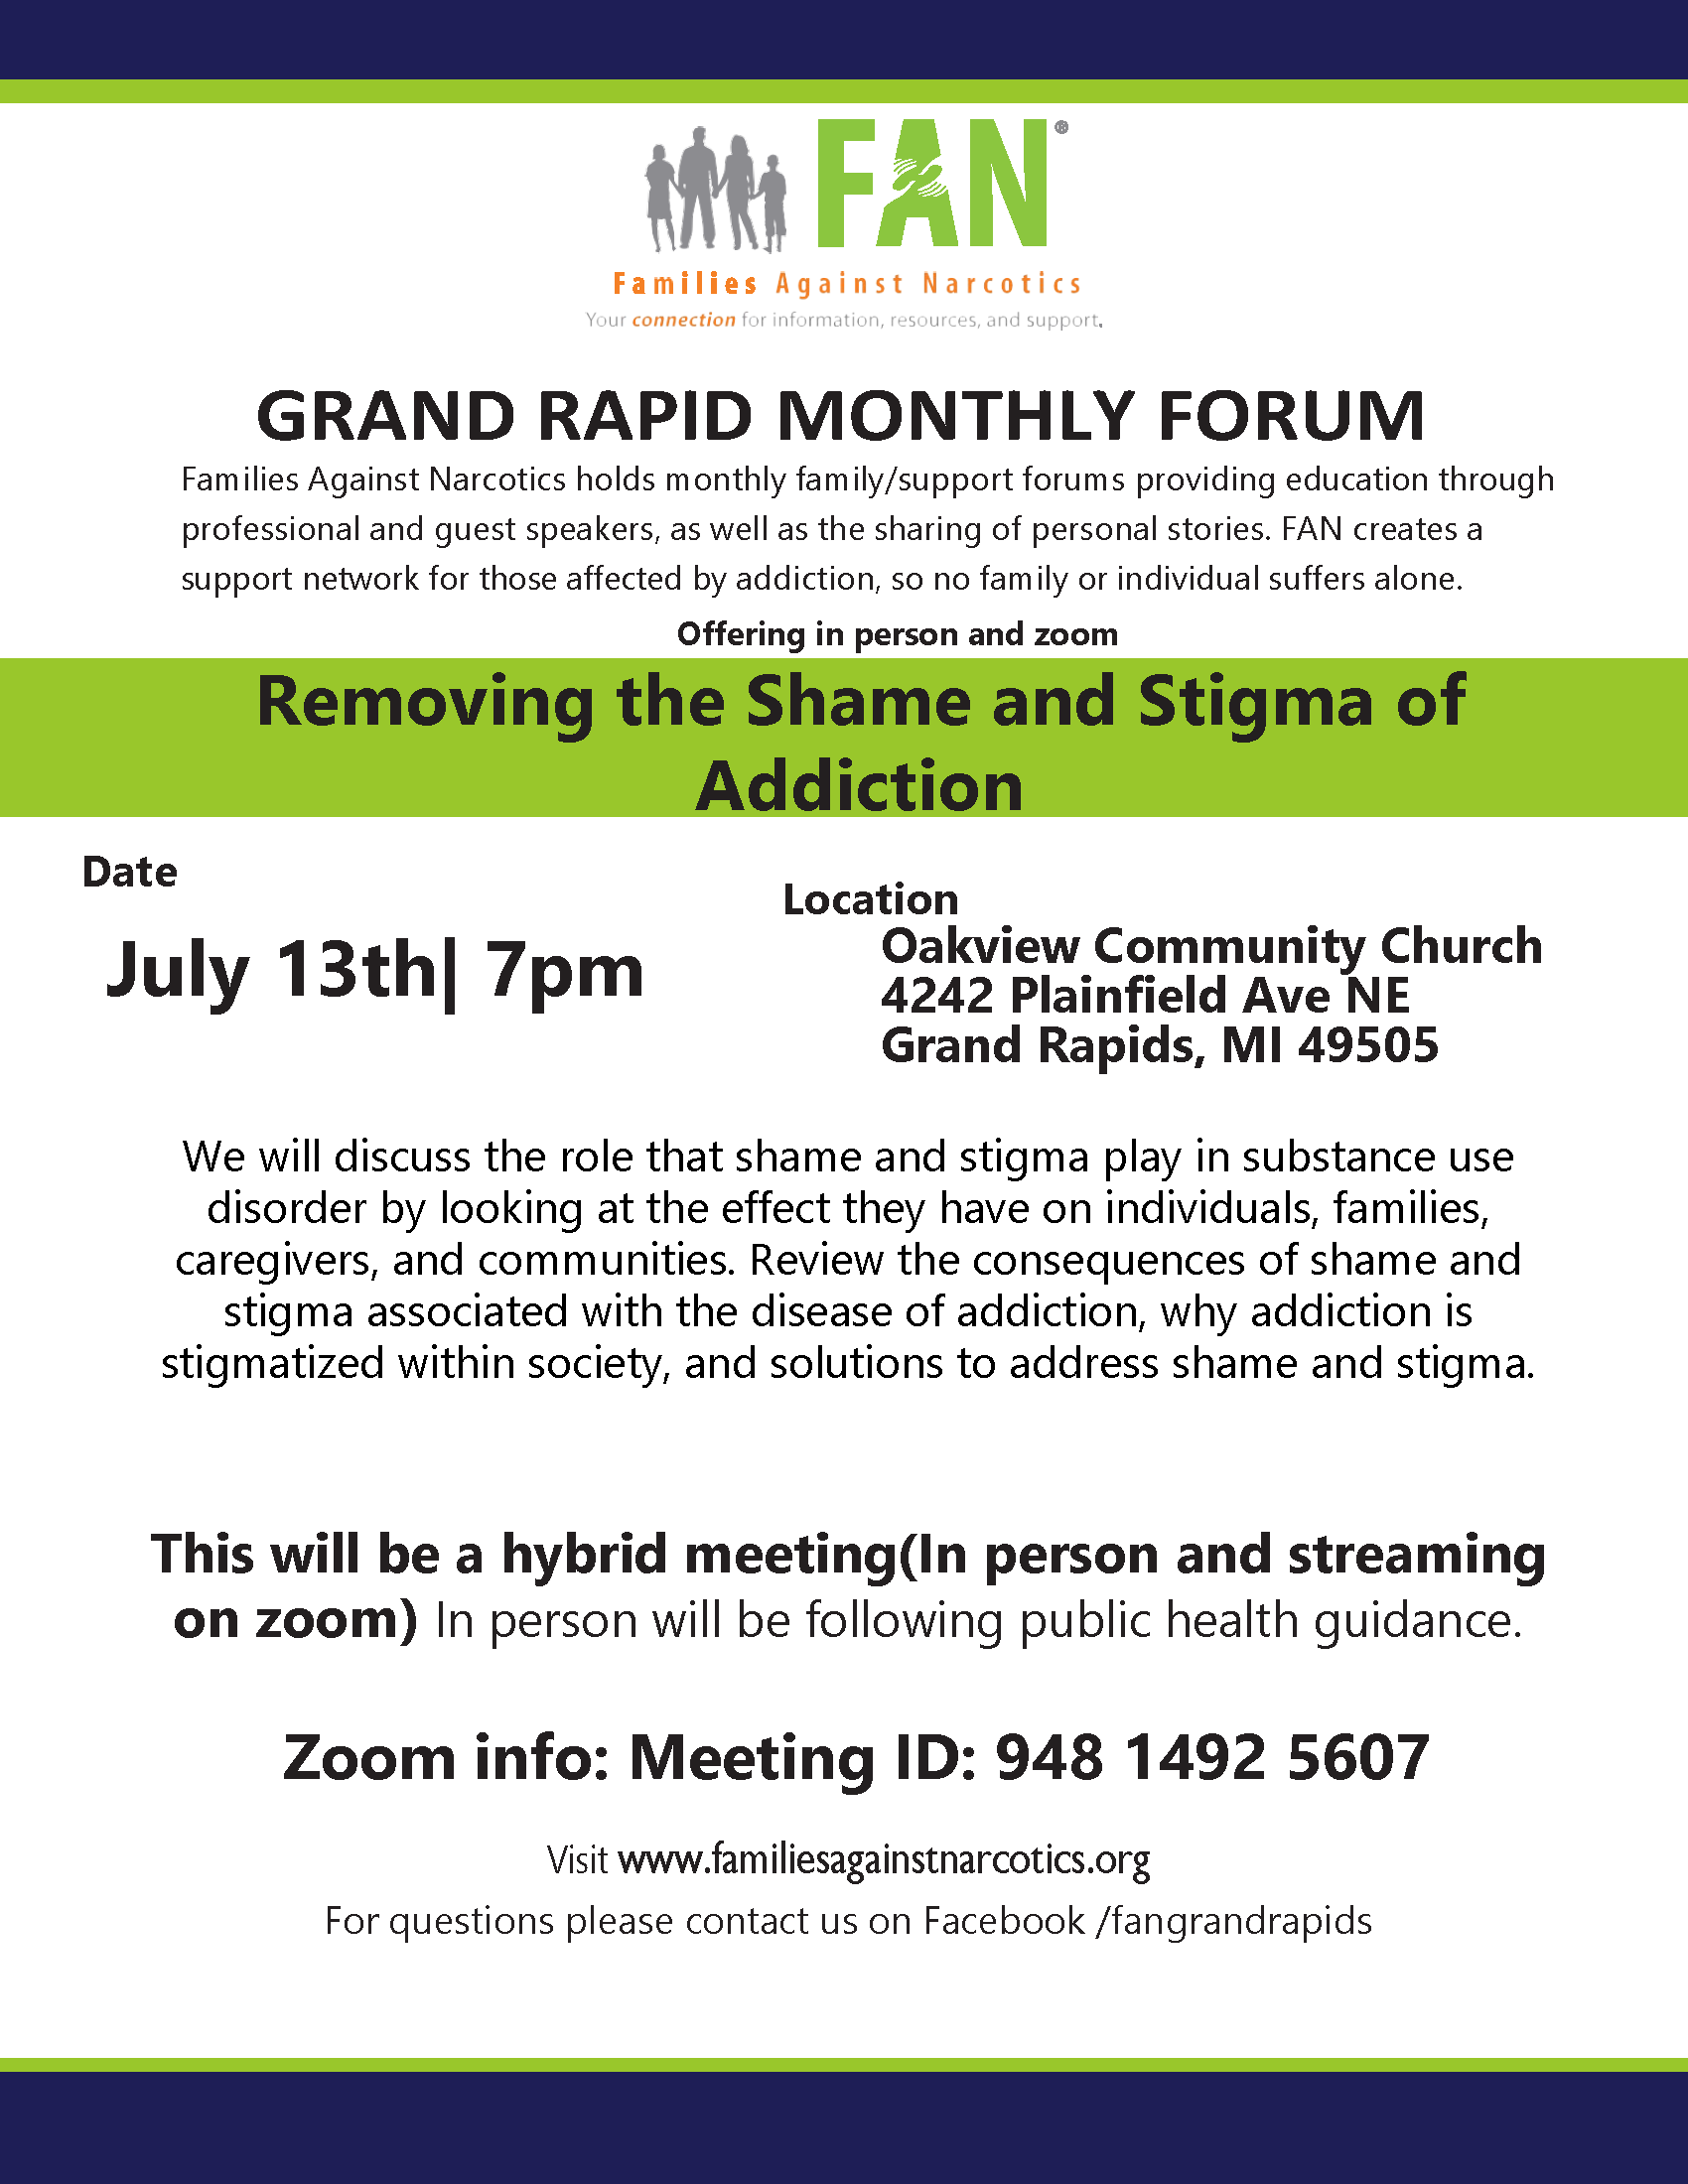 Grand Rapids Families Against Narcotics (FAN) Meeting 07/13/2021